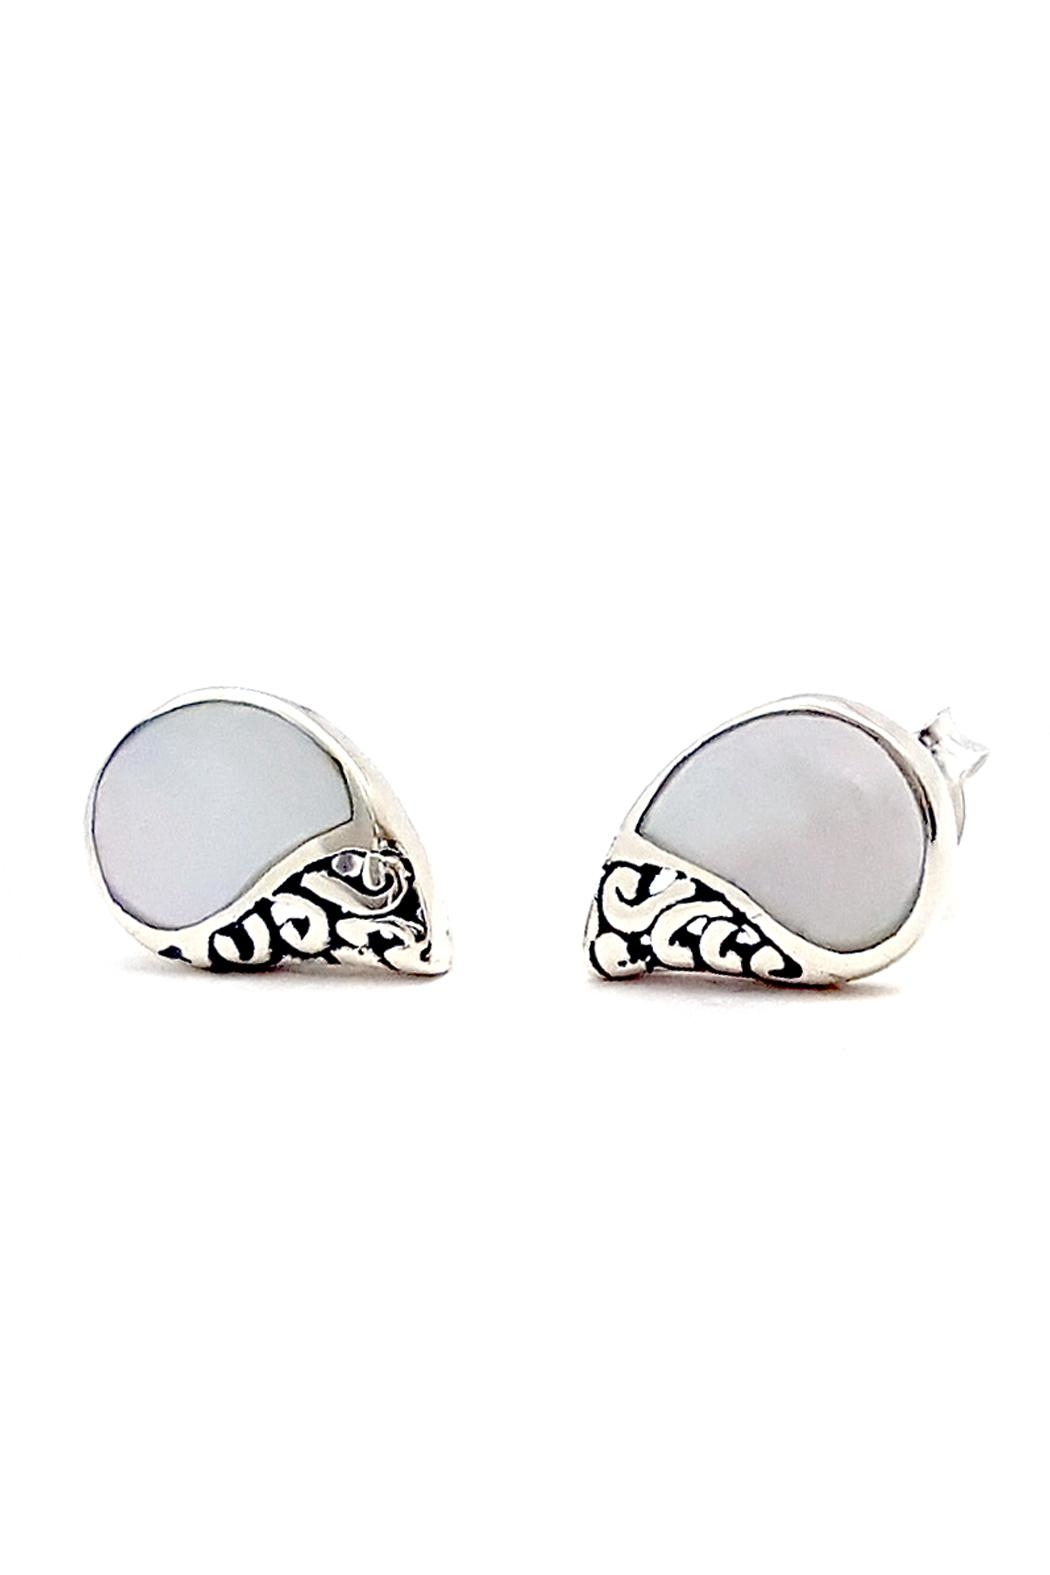 Oceania Maui Shell Stud Earrings - Main Image